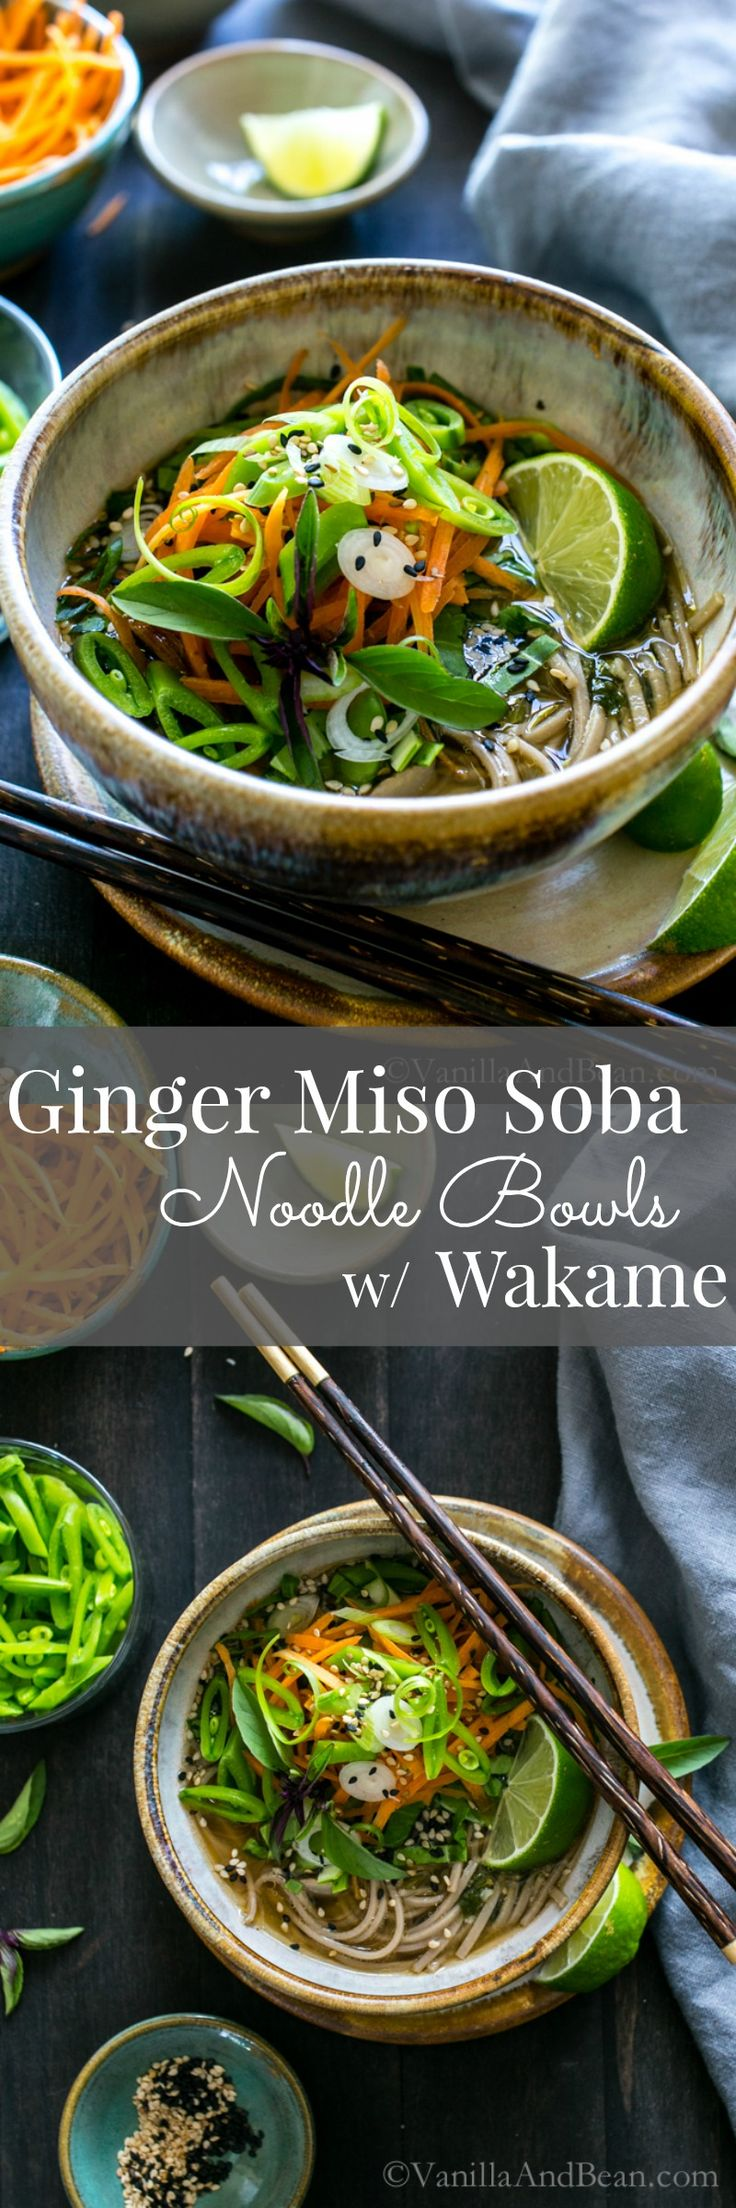 Warming and cozy, Ginger Miso Soba Noodle Bowls with Wakame are so comforting… Vegan Recipes | Vegetarian Recipes | Vegan Recipes